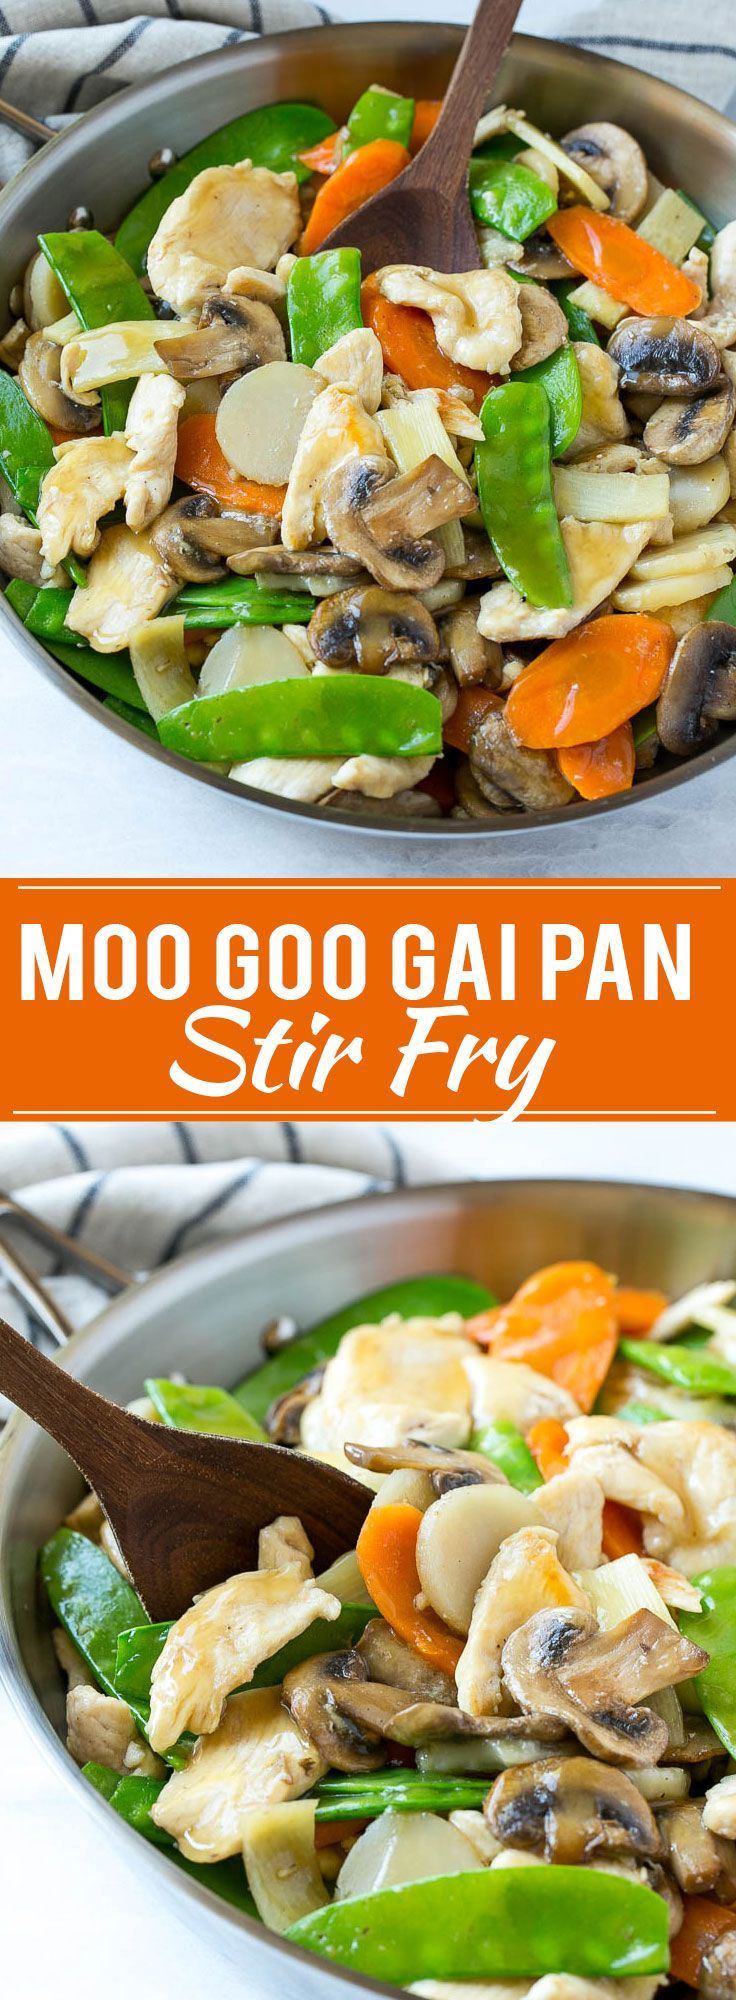 This recipe for moo goo gai pan is a classic dish of chicken and vegetables stir fried with a savory sauce. Plus secret tips on how to make your stir fries taste like they came from a restaurant!